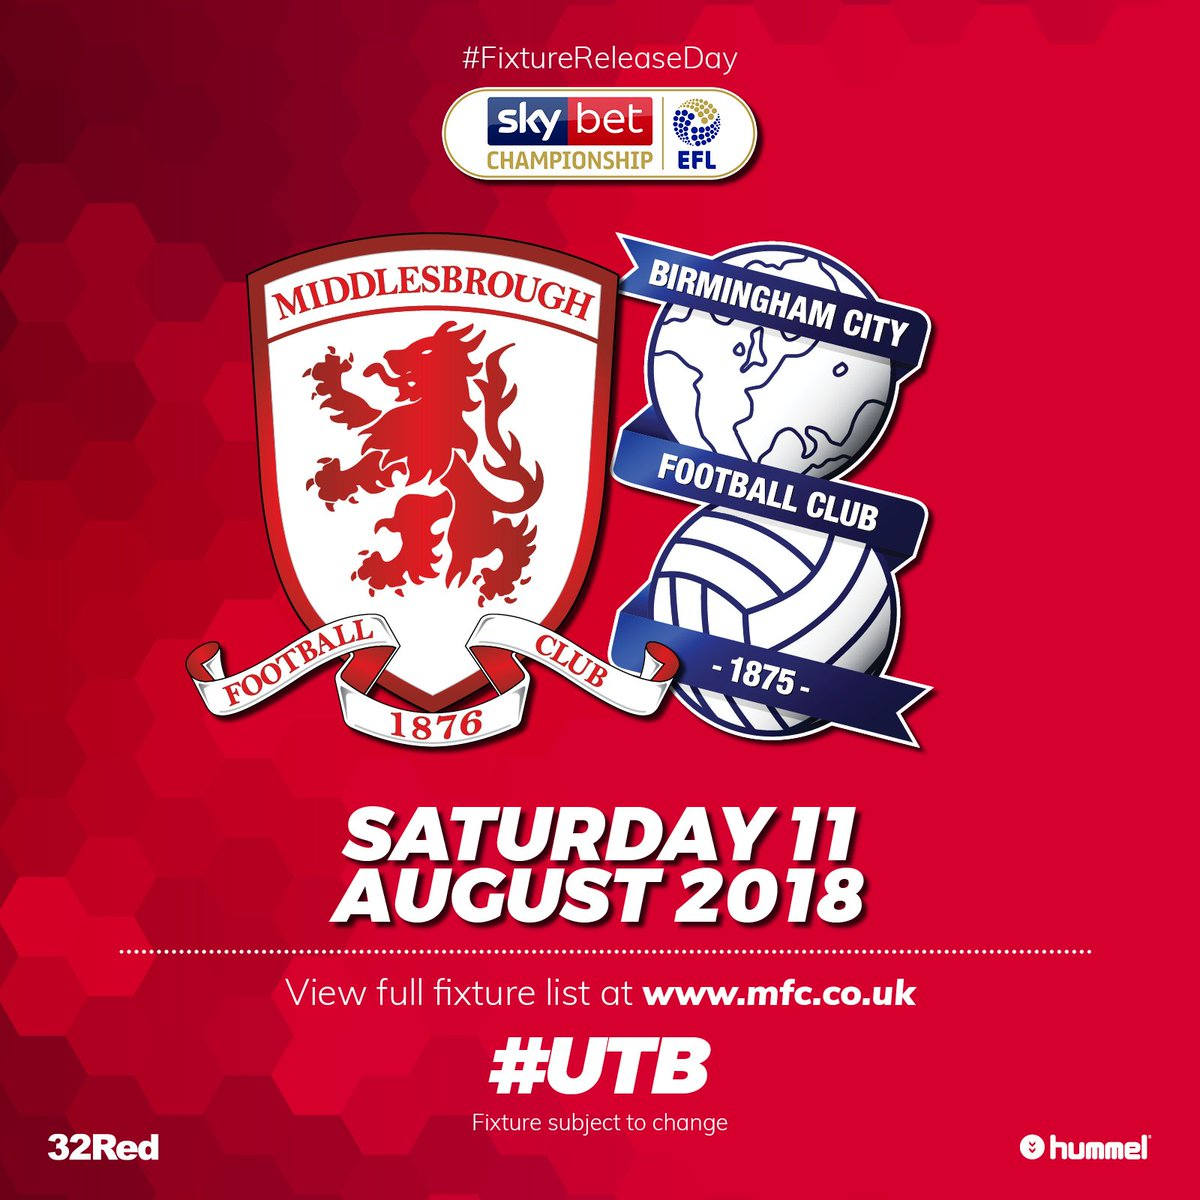 .@BCFC are first up at the Riverside 🏠🏟️ #UTB #FixtureReleaseDay